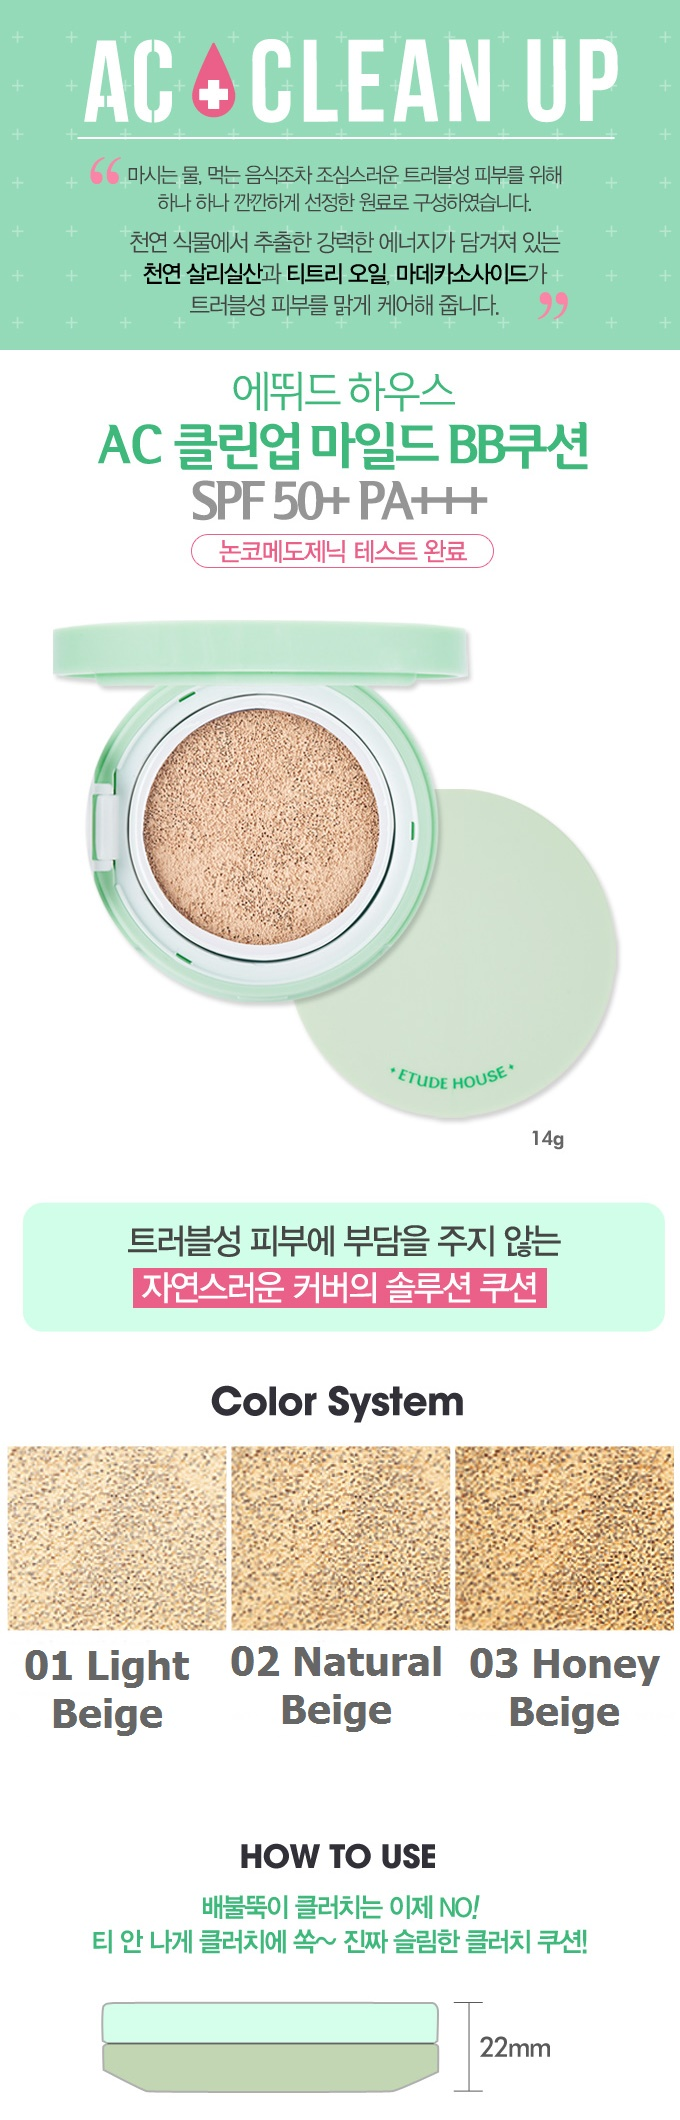 etude-house-clean-up-mild-bb-cusion-spf50-pa-1.jpg